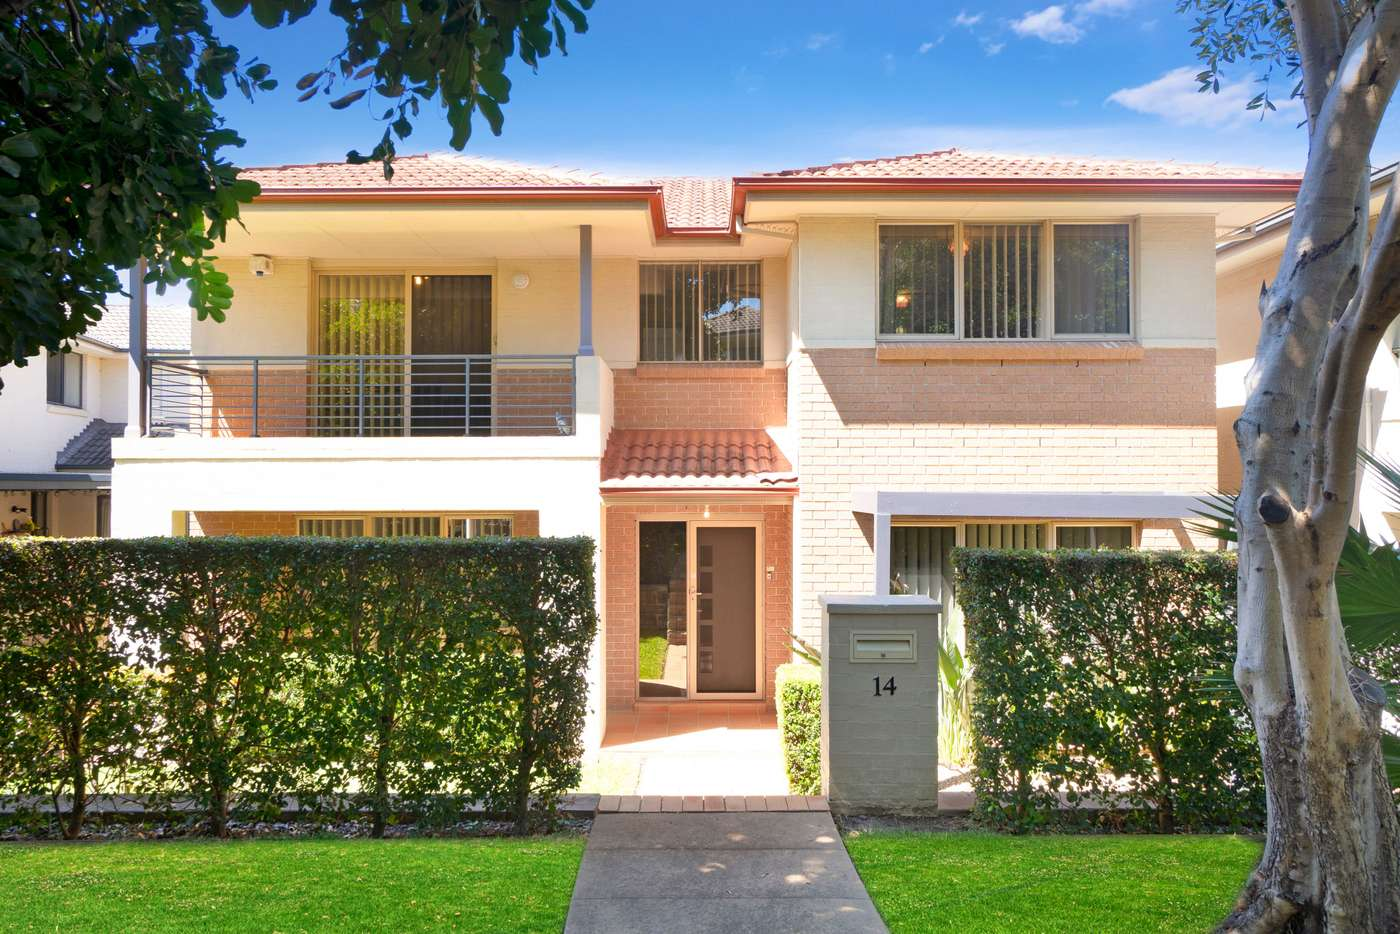 Main view of Homely house listing, 14 Dartford Street, Stanhope Gardens NSW 2768